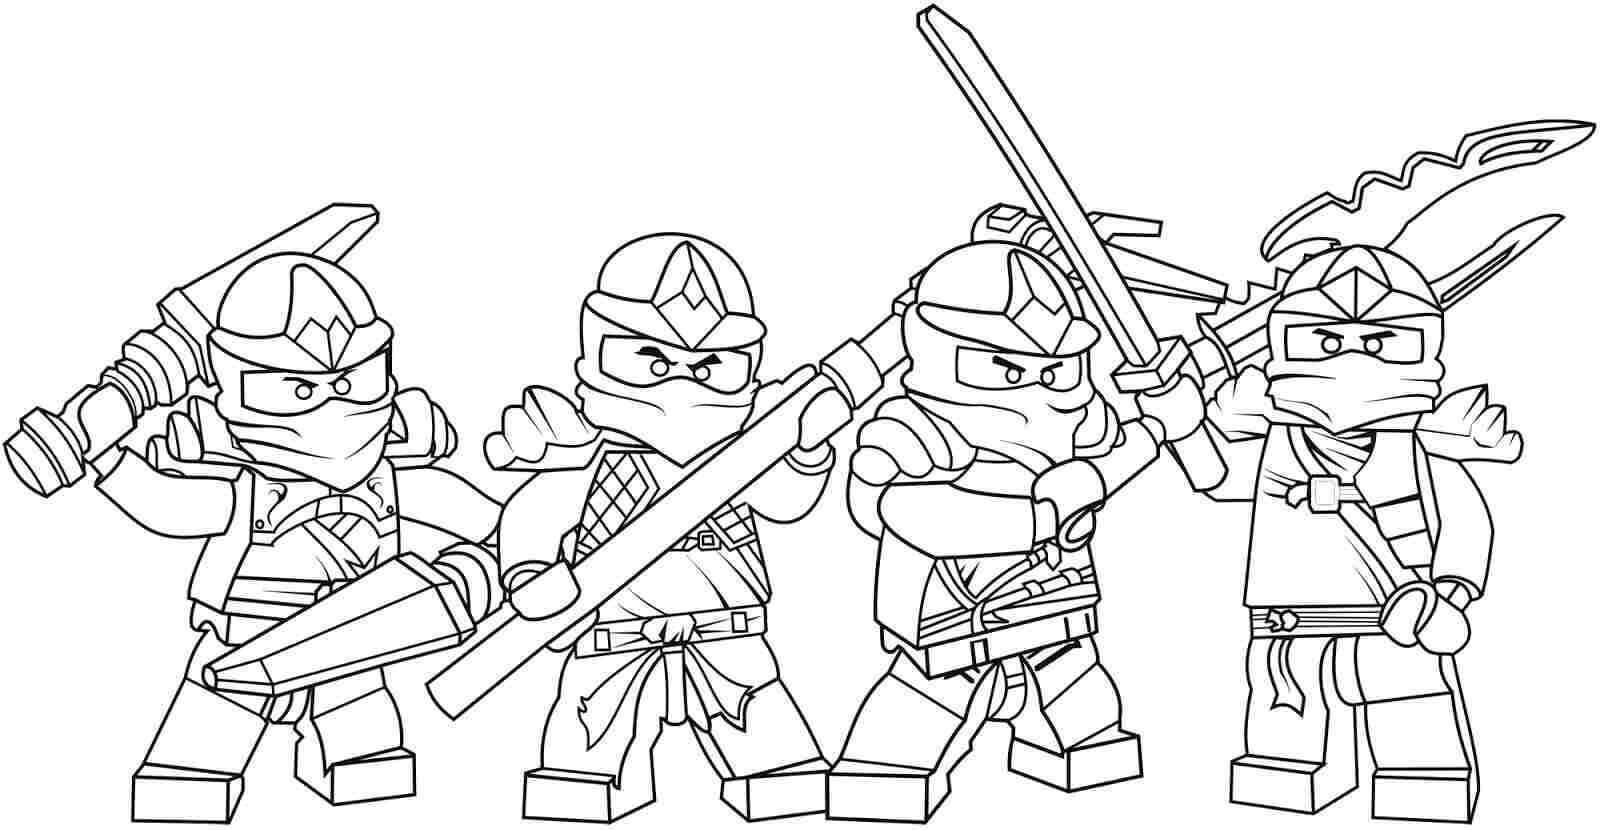 Lego Ninjago Coloring Pages Free With Images